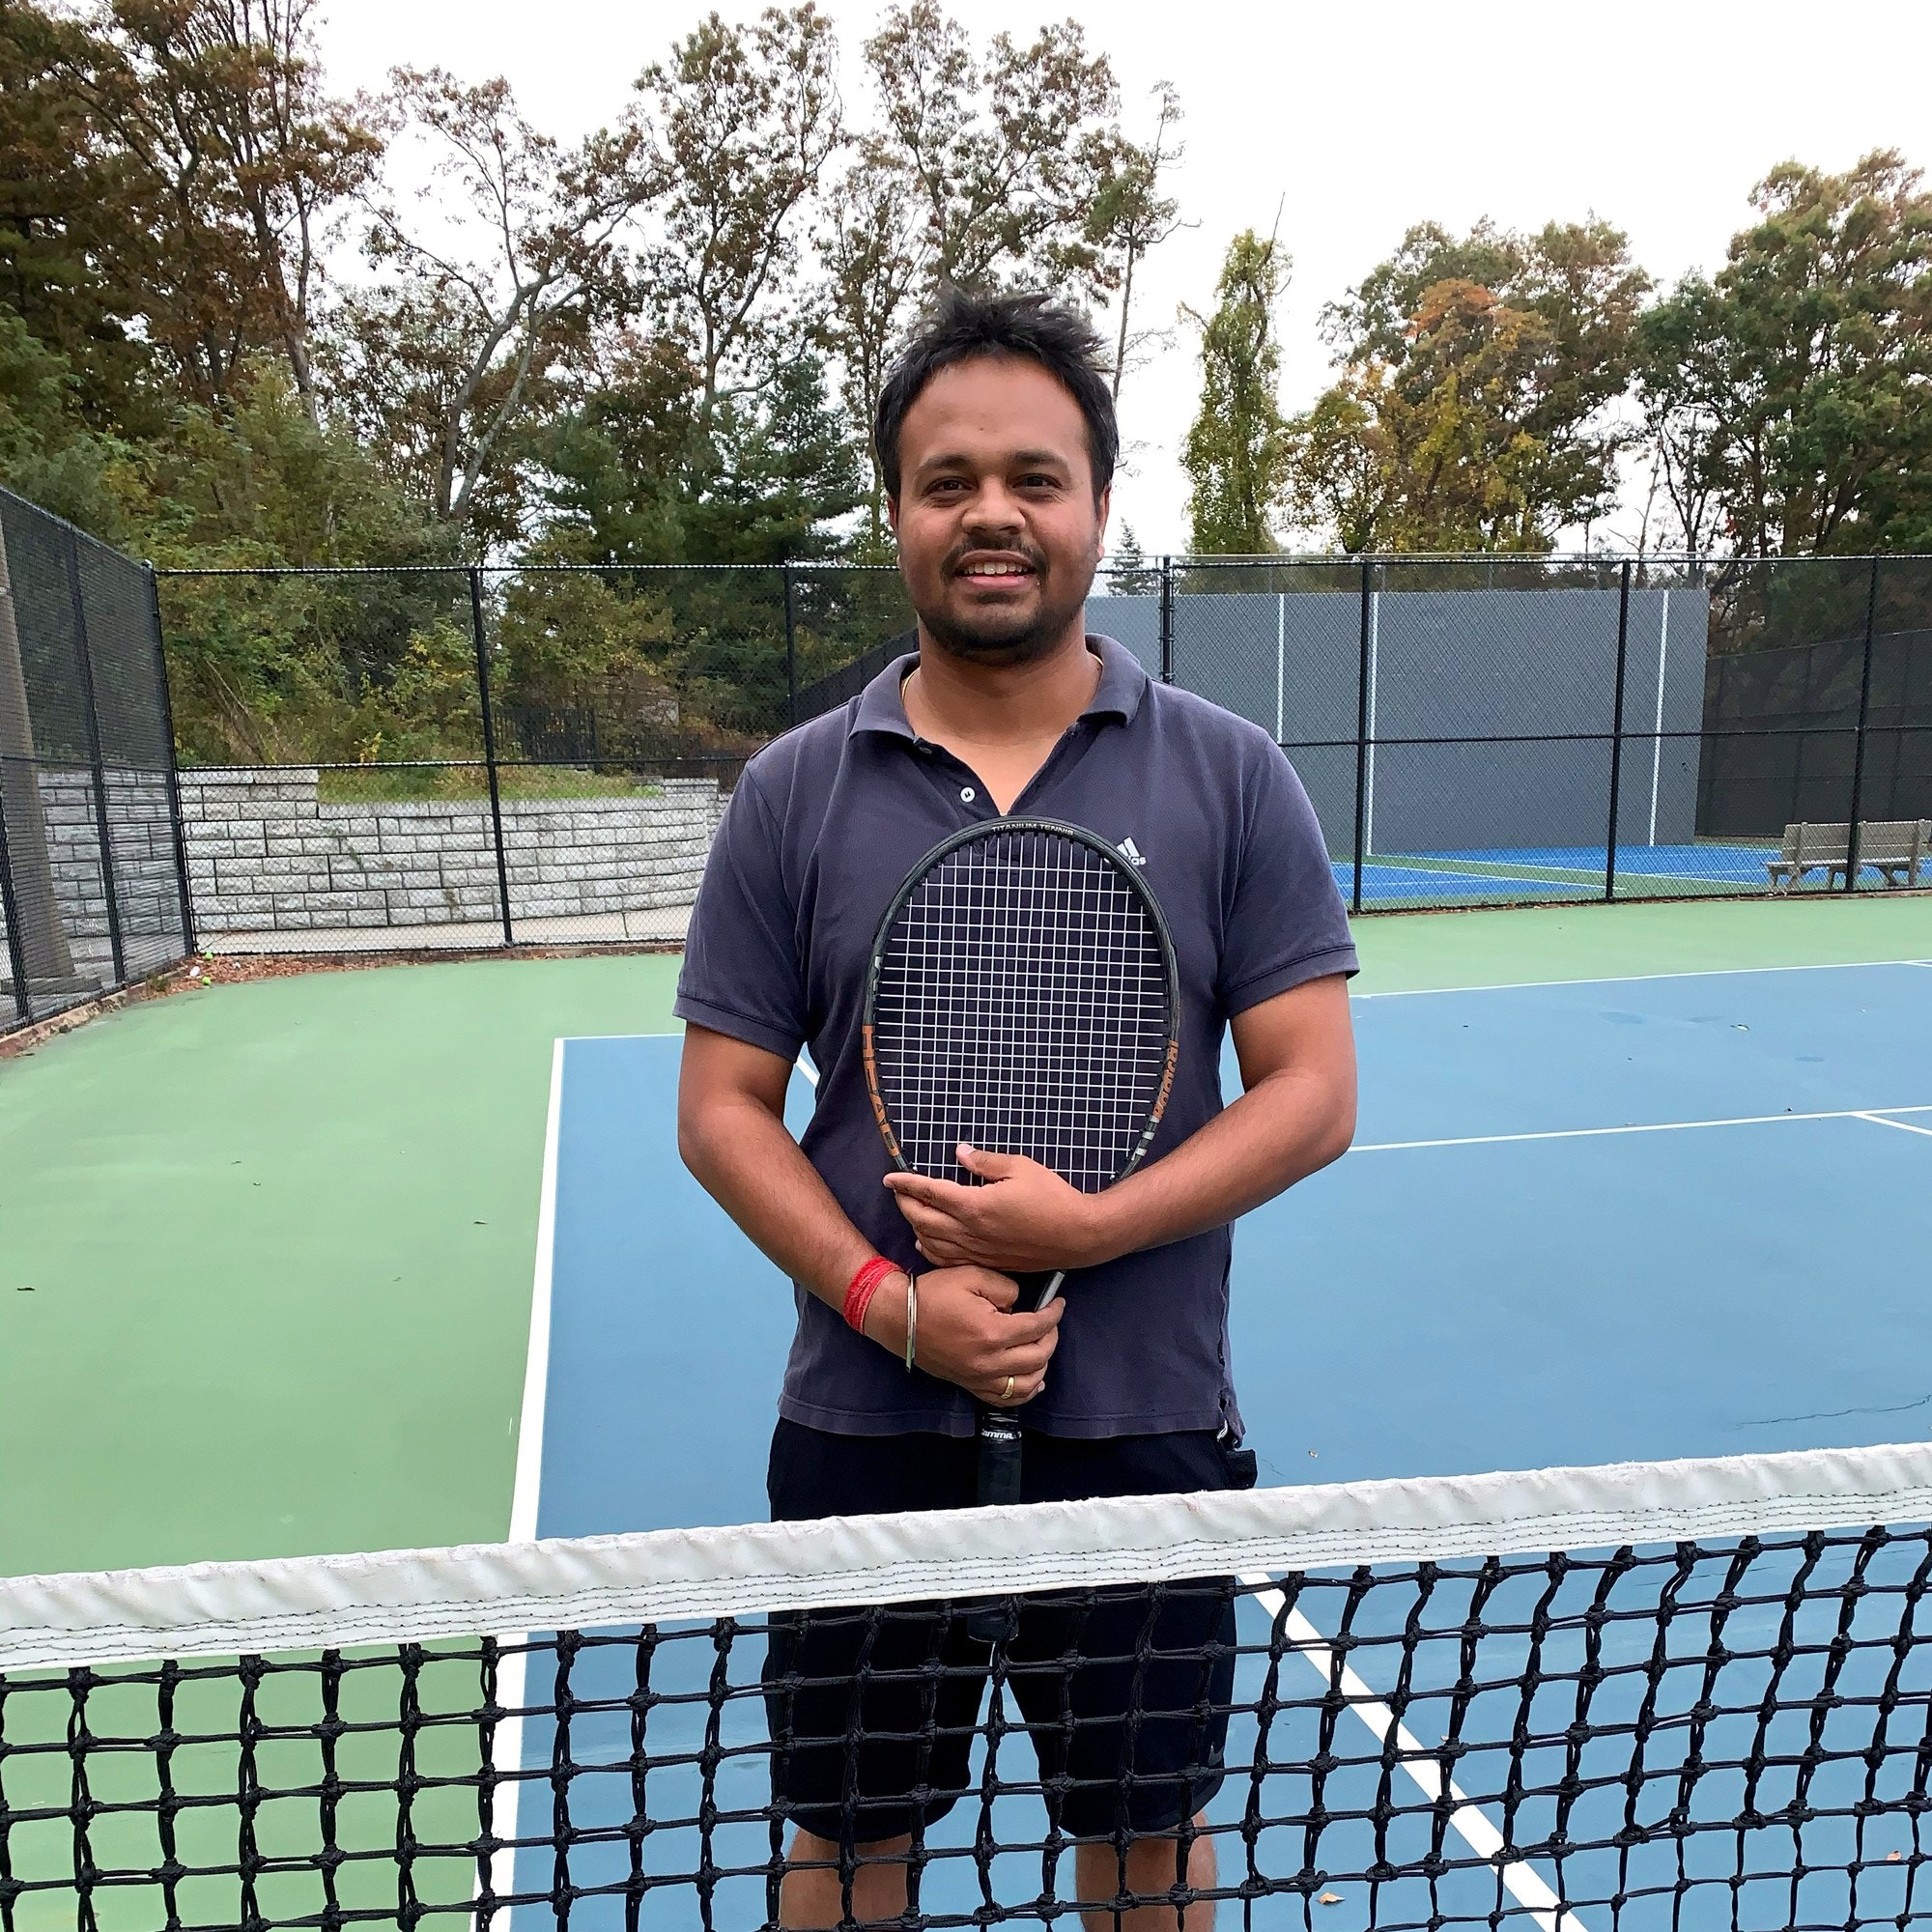 Prasurjya B. teaches tennis lessons in Hicksville, NY